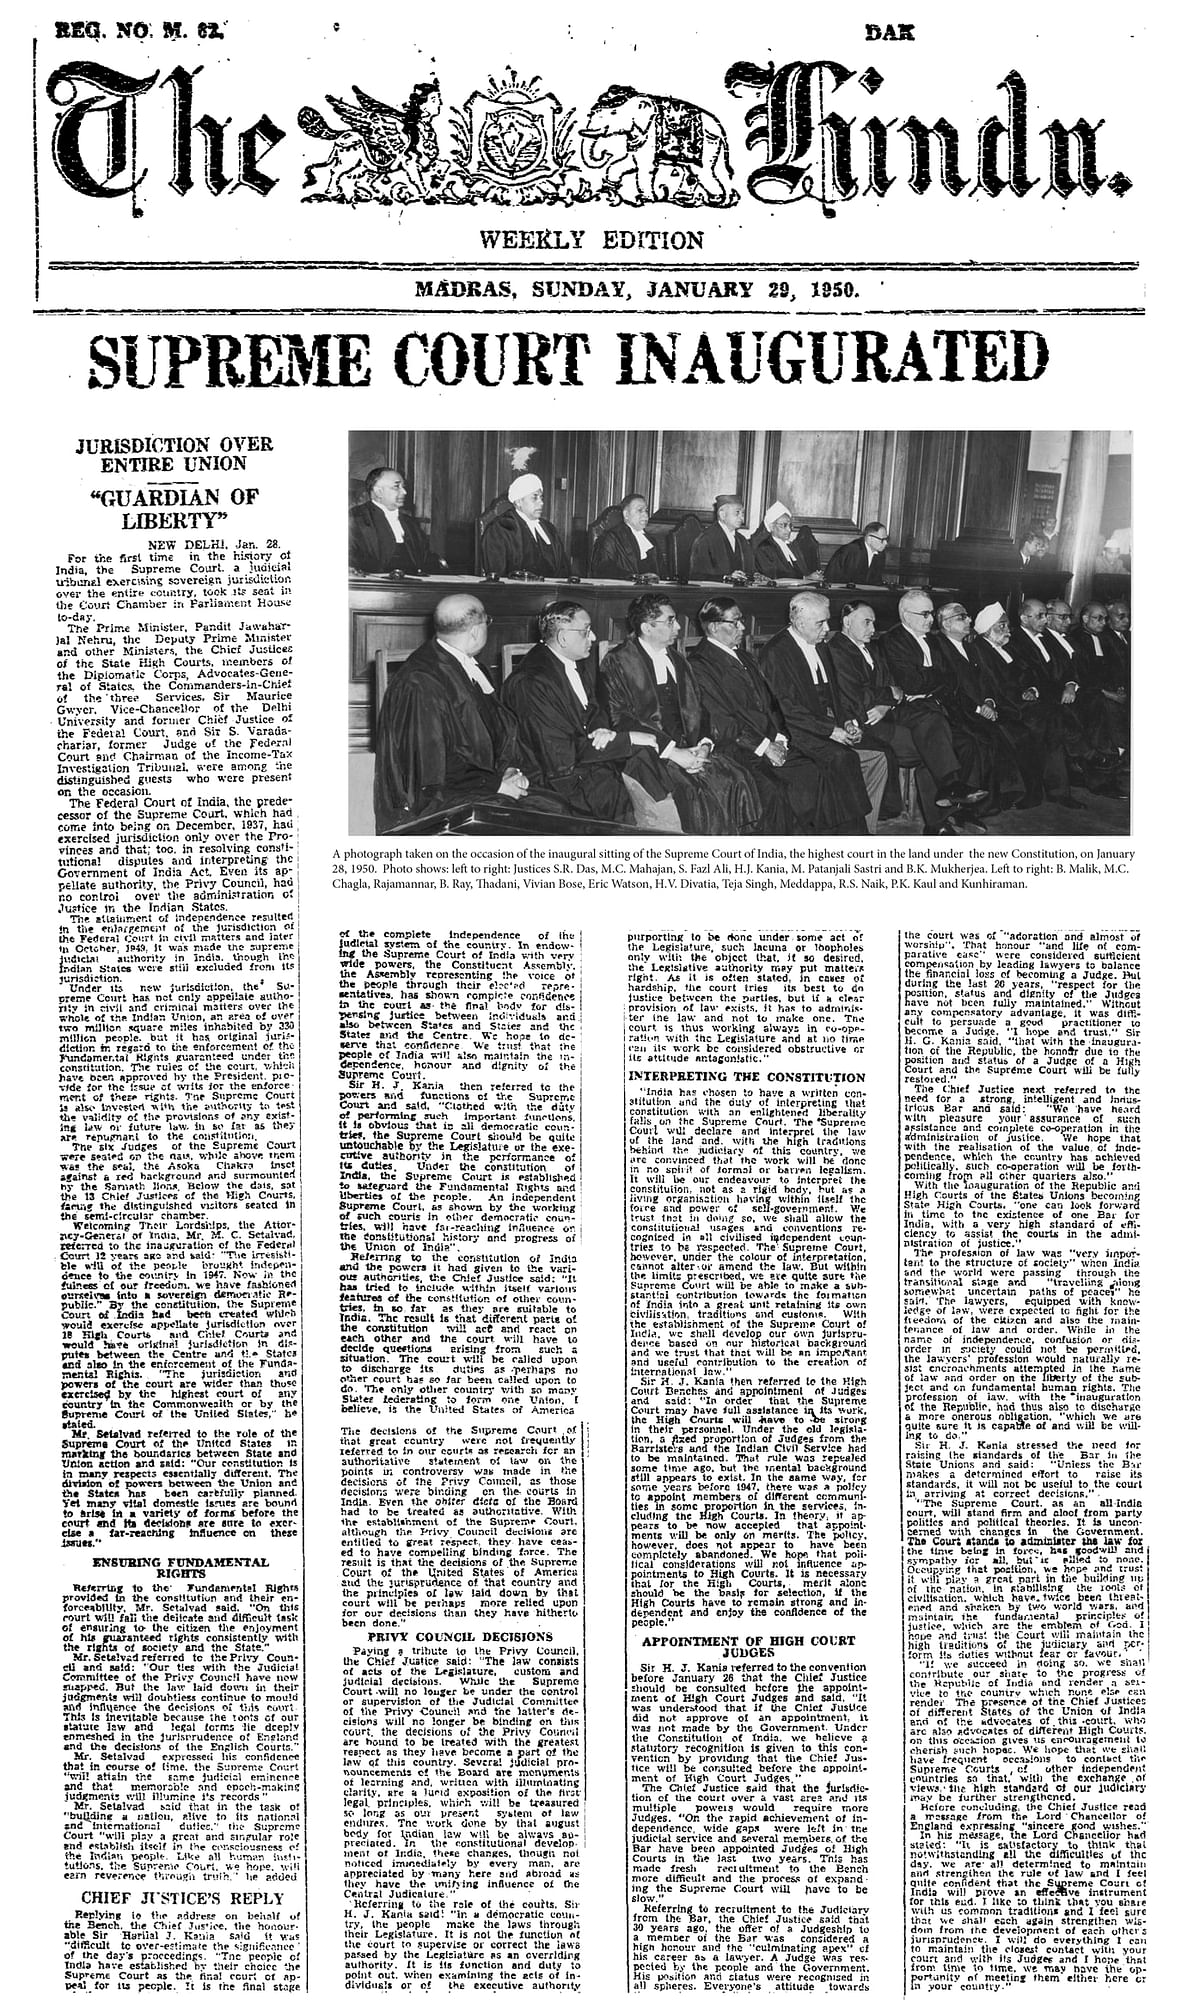 Inauguration Ceremony of Supreme Court, published by The Hindu in 1950